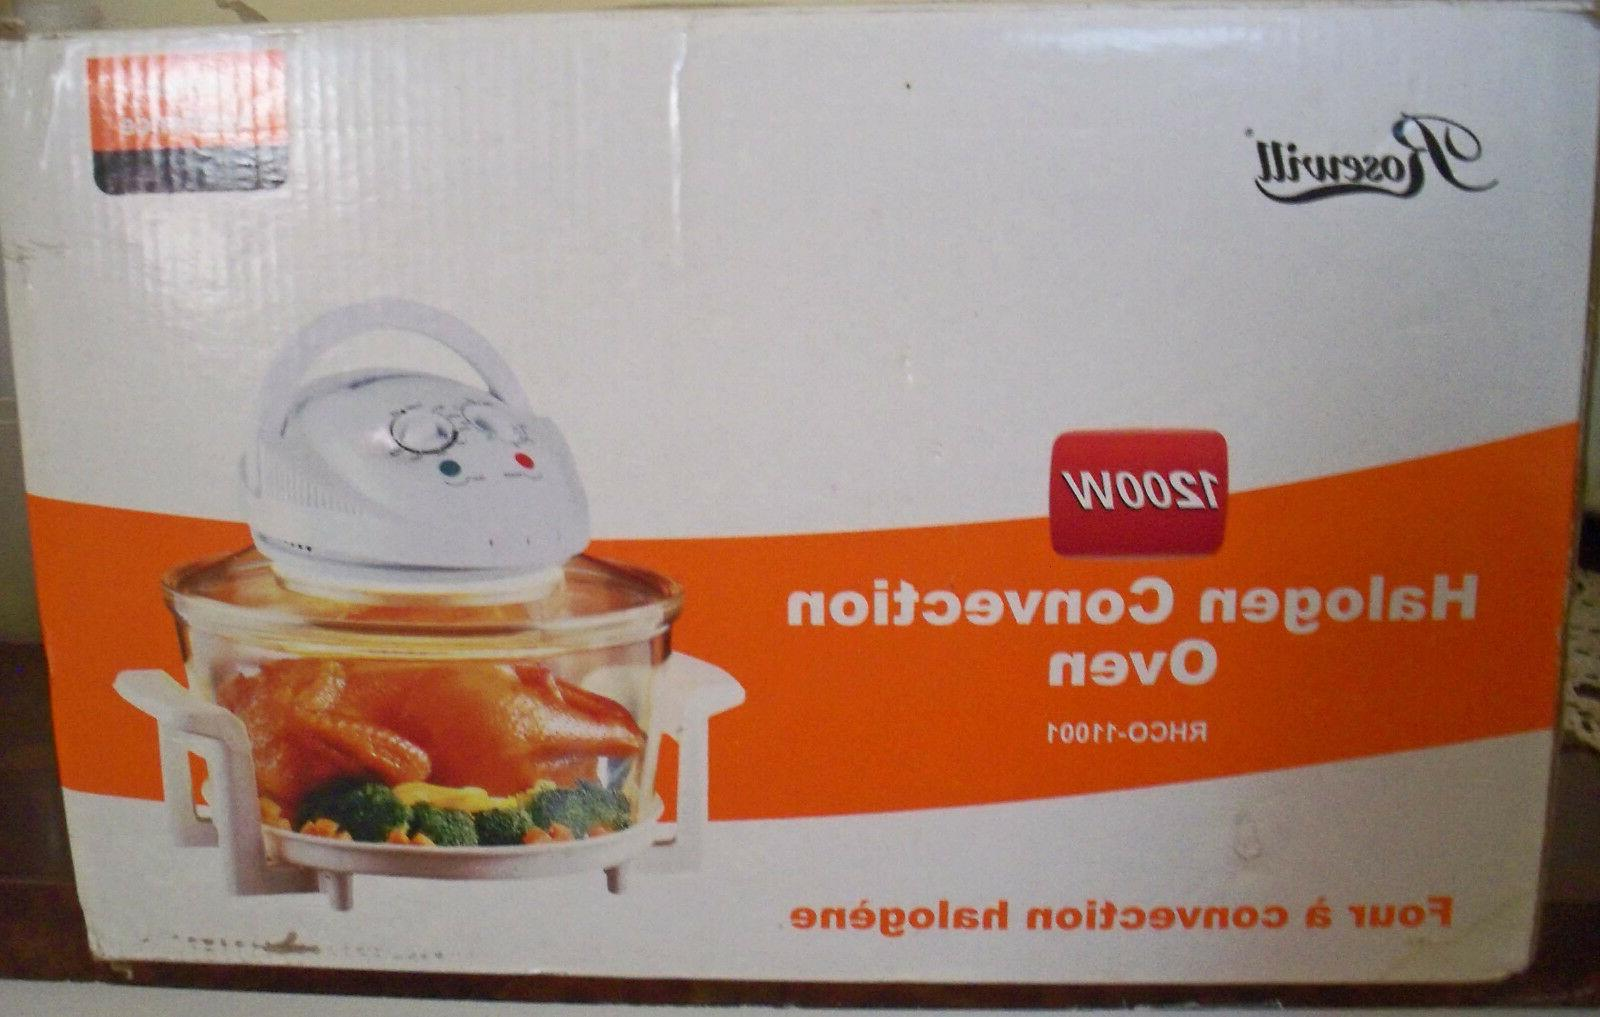 1200w halogen convection oven new in box